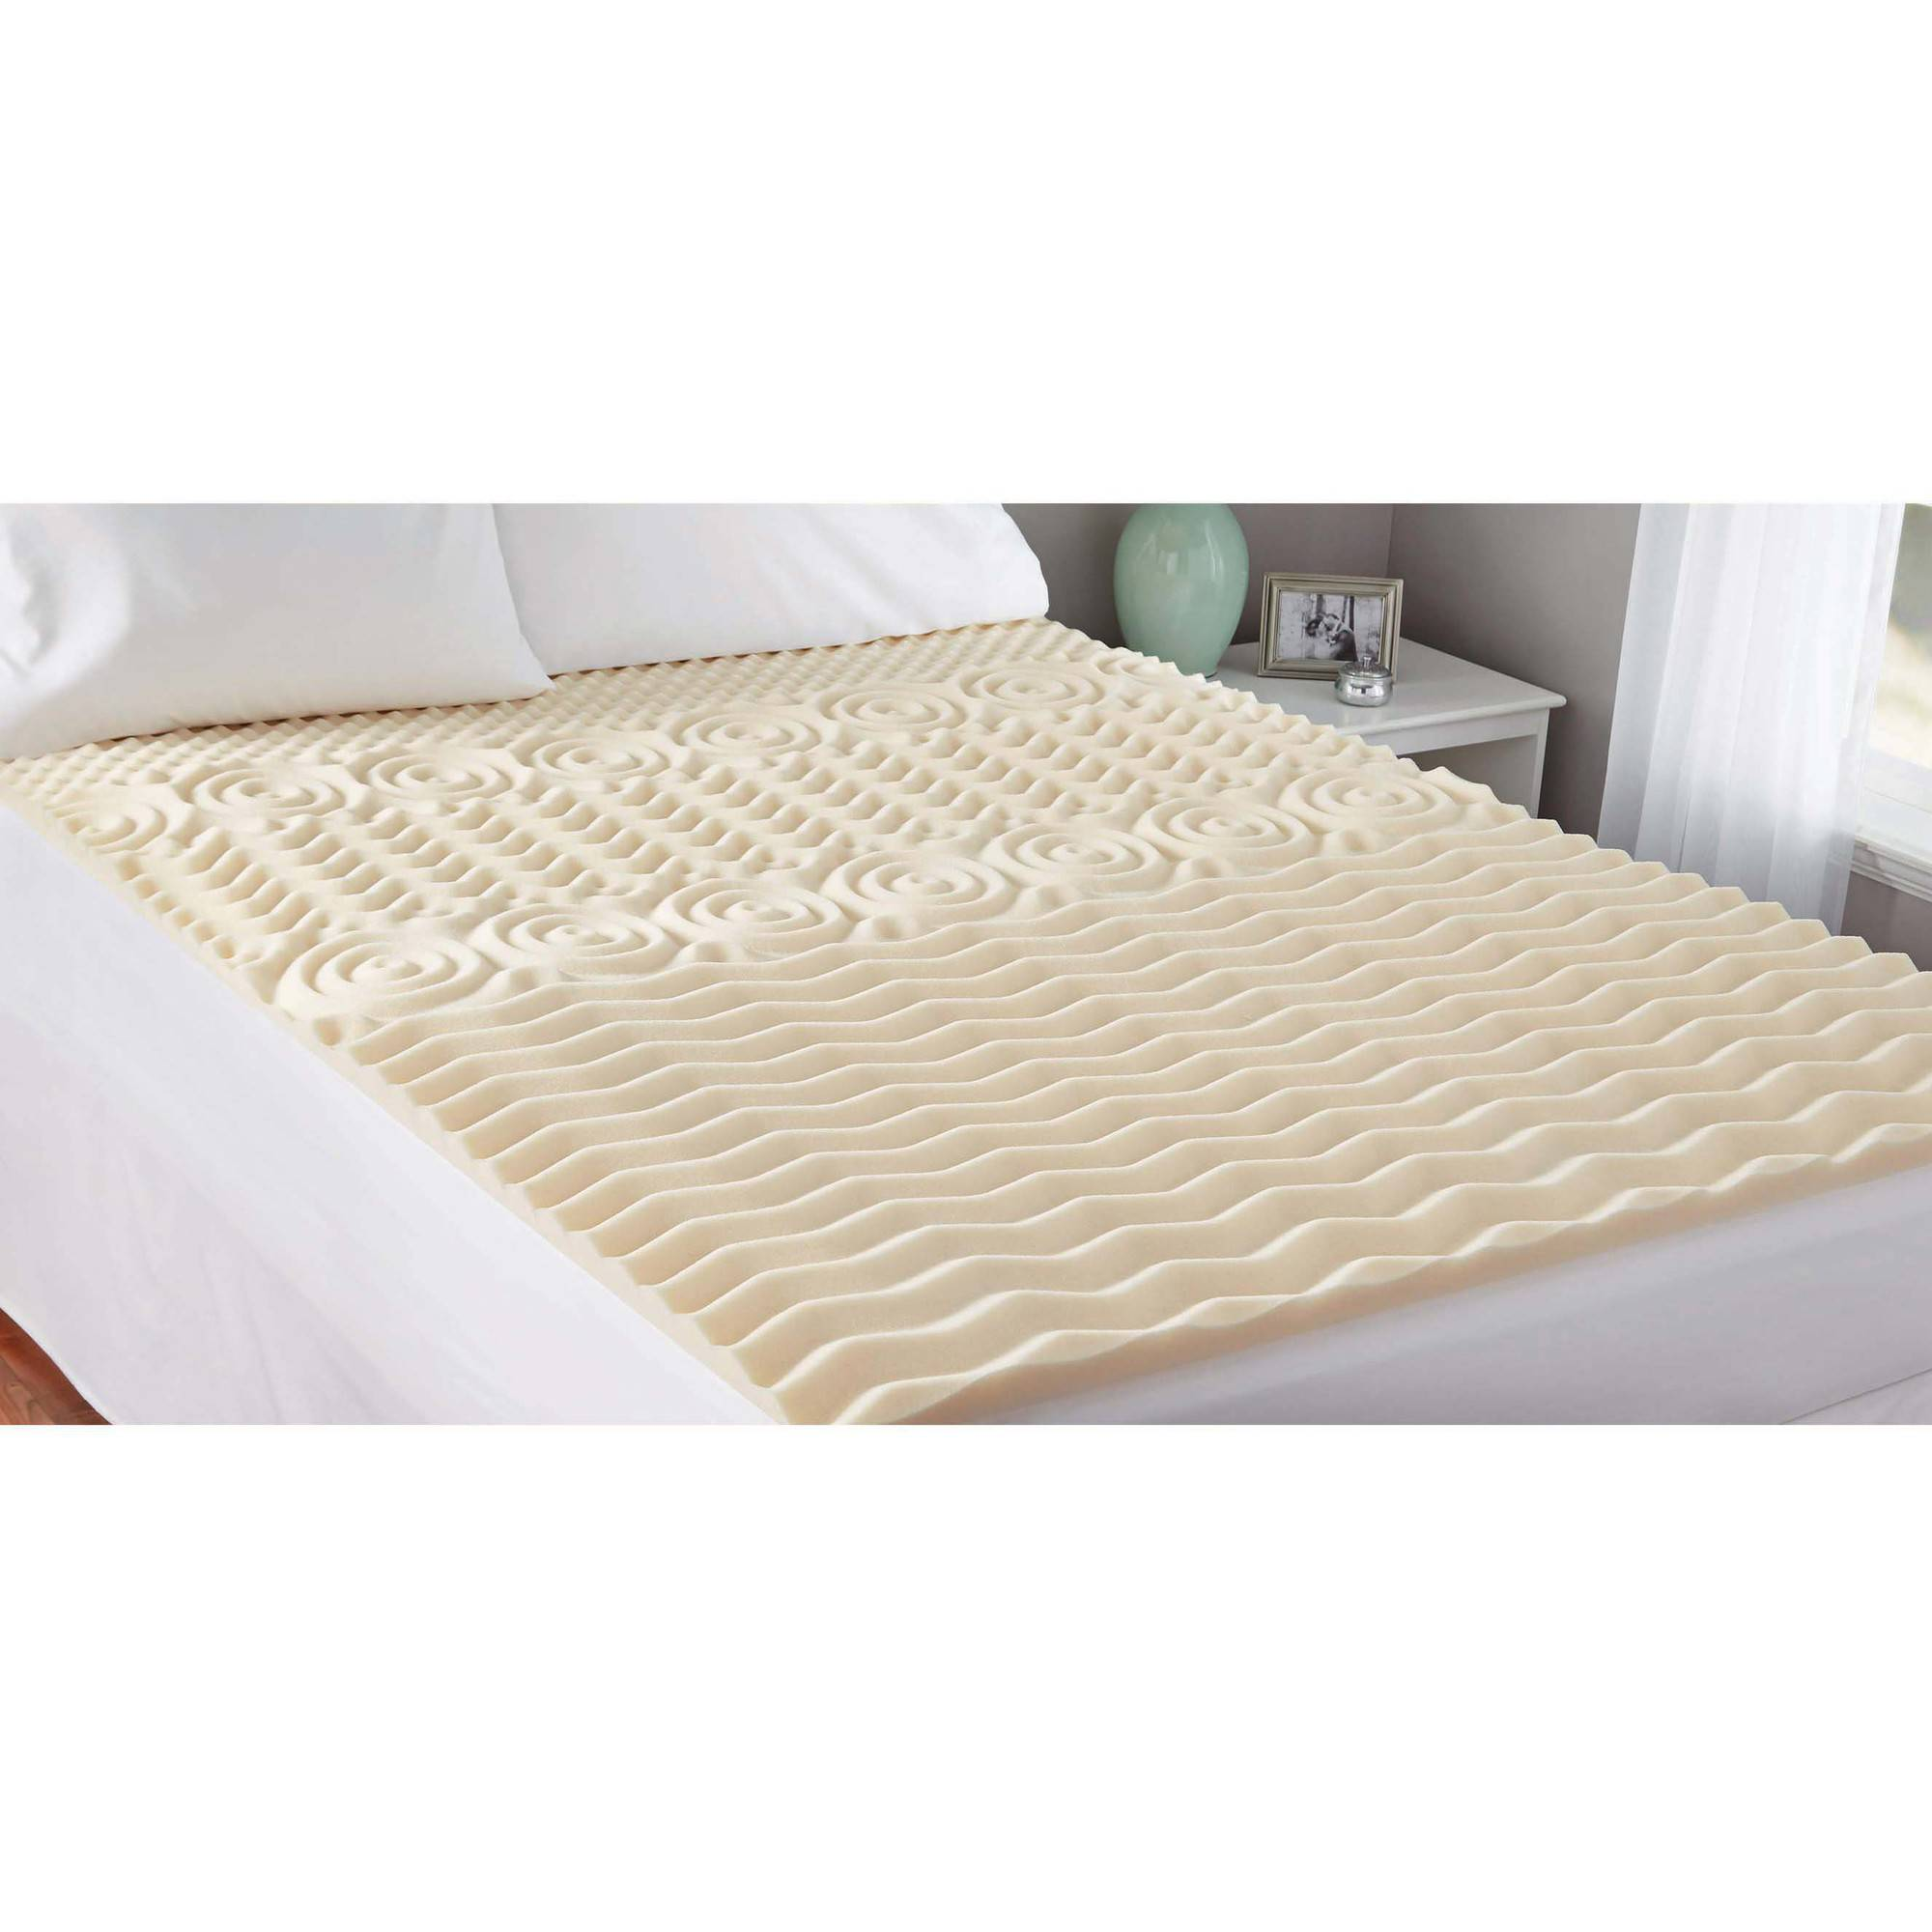 Memory Foam Mattress Toppers Mainstays Memory Foam 1 5